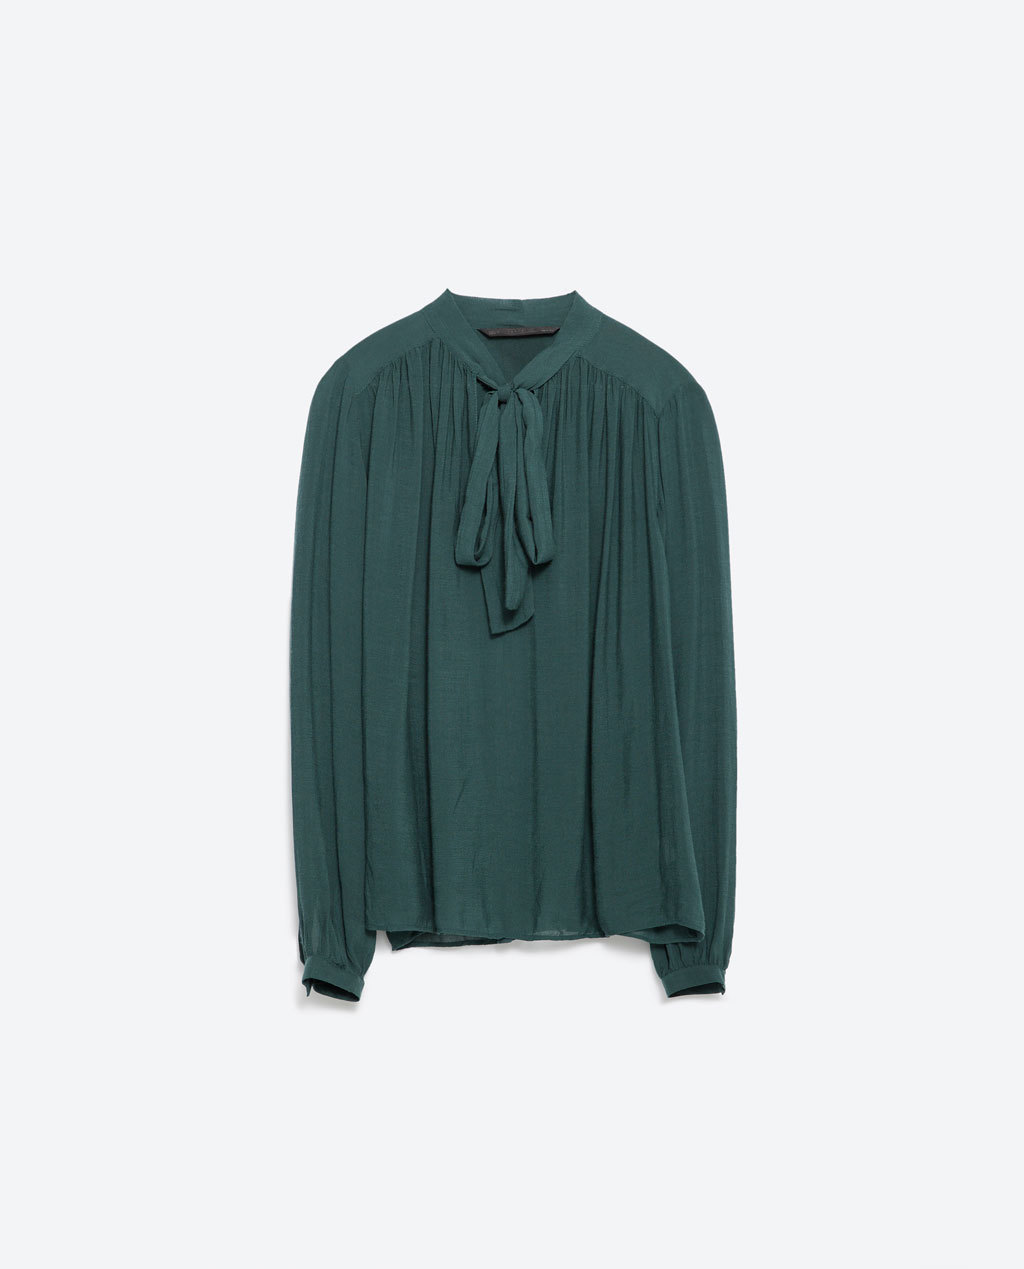 Bow Shirt - pattern: plain; style: shirt; neckline: pussy bow; predominant colour: dark green; occasions: casual, work, occasion, creative work; length: standard; fibres: viscose/rayon - 100%; fit: loose; sleeve length: long sleeve; sleeve style: standard; pattern type: fabric; texture group: other - light to midweight; season: a/w 2015; wardrobe: highlight